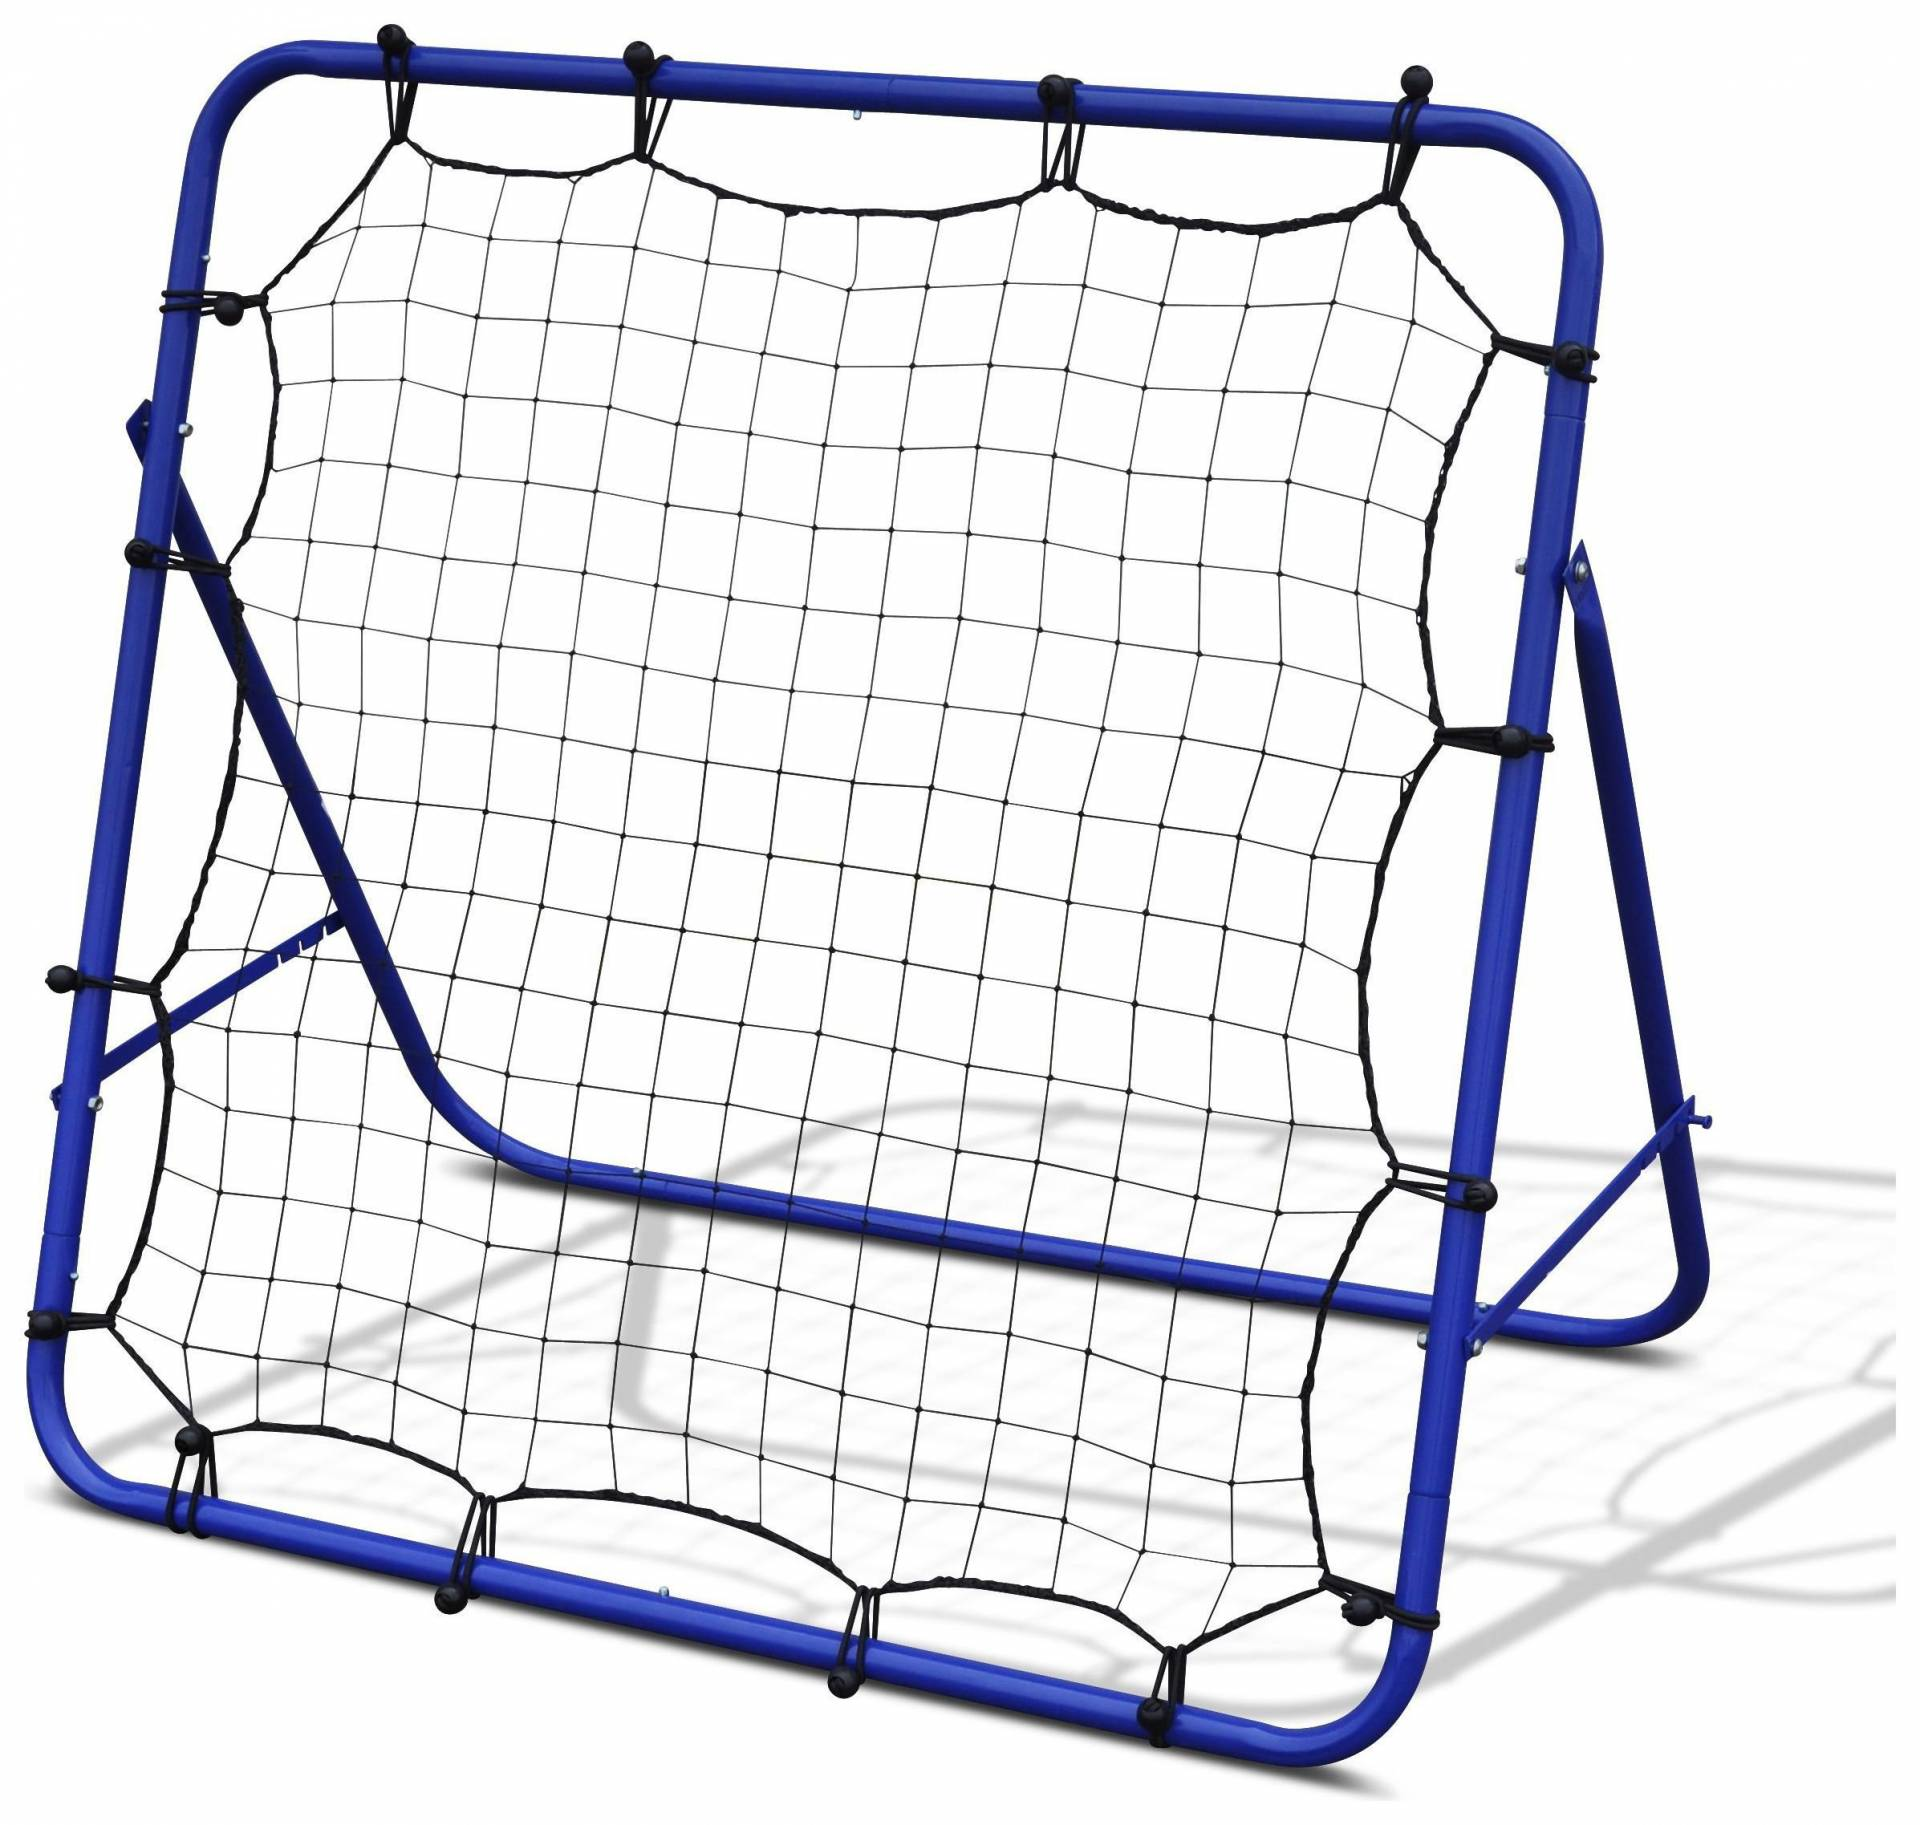 Sunsport 100cm Rebounder Trainer from sunsport